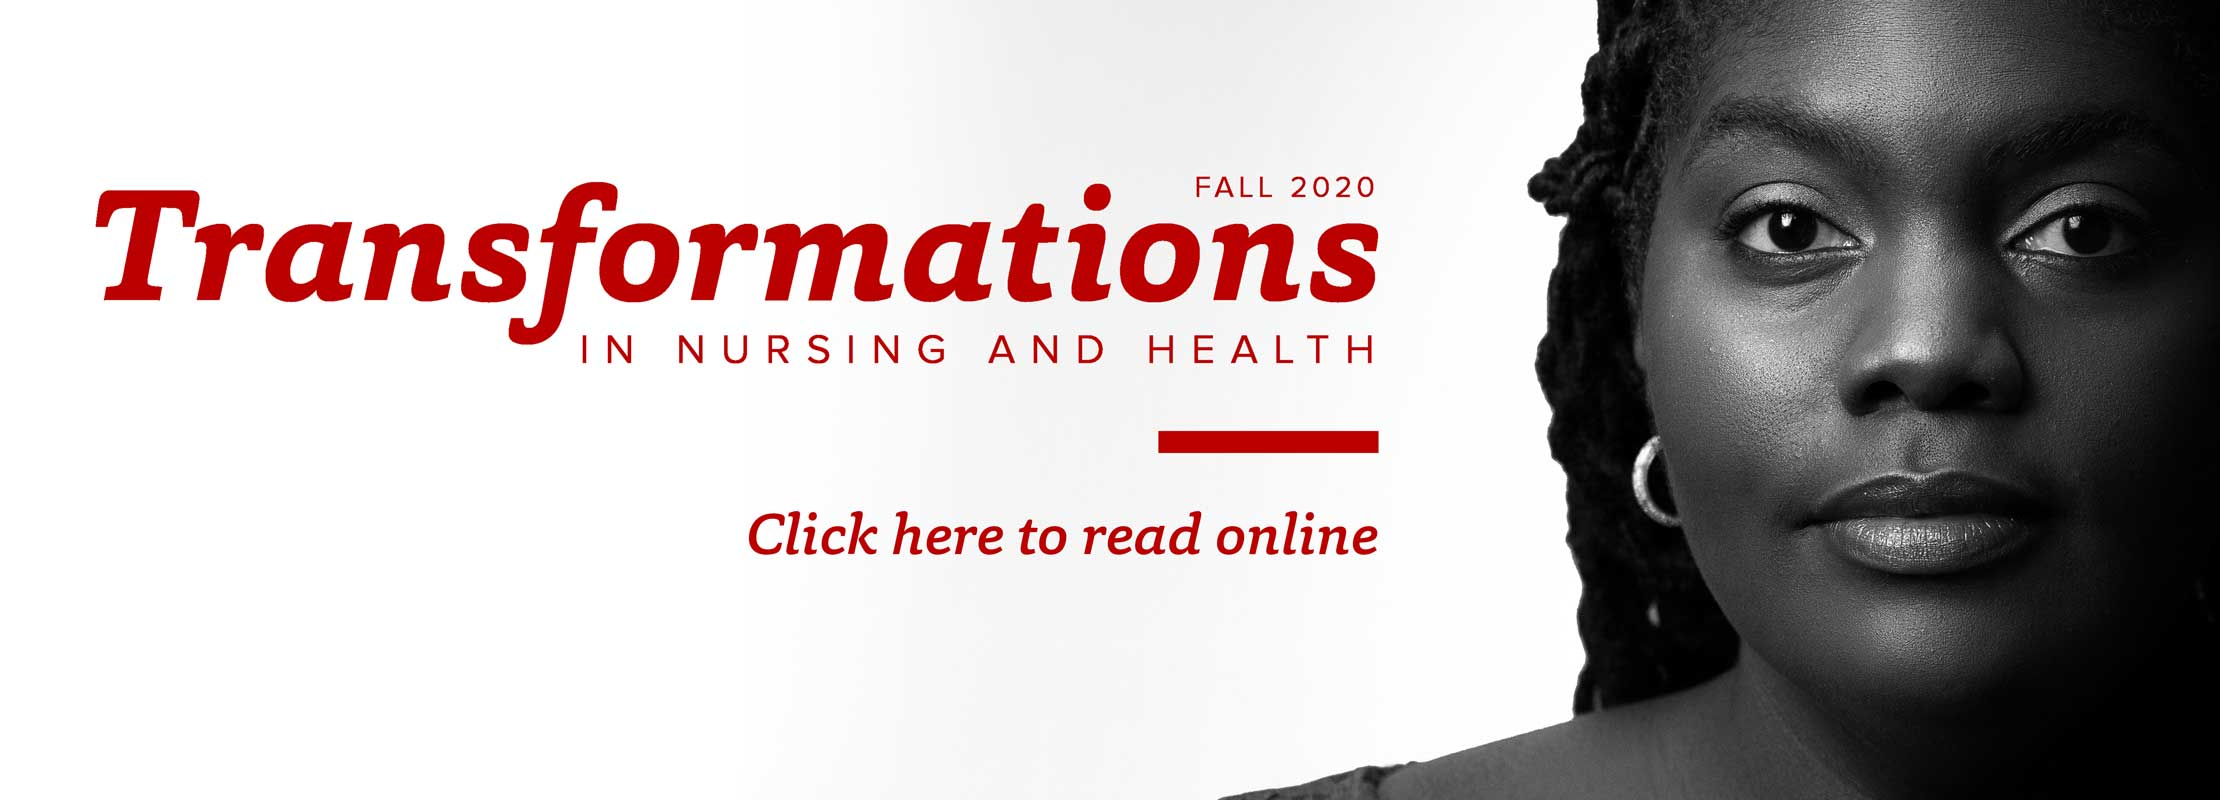 "black and white portrait of Timiya Nolan with the text ""Transformations in Nursing and Health Fall 2020 – Click here to read online"""